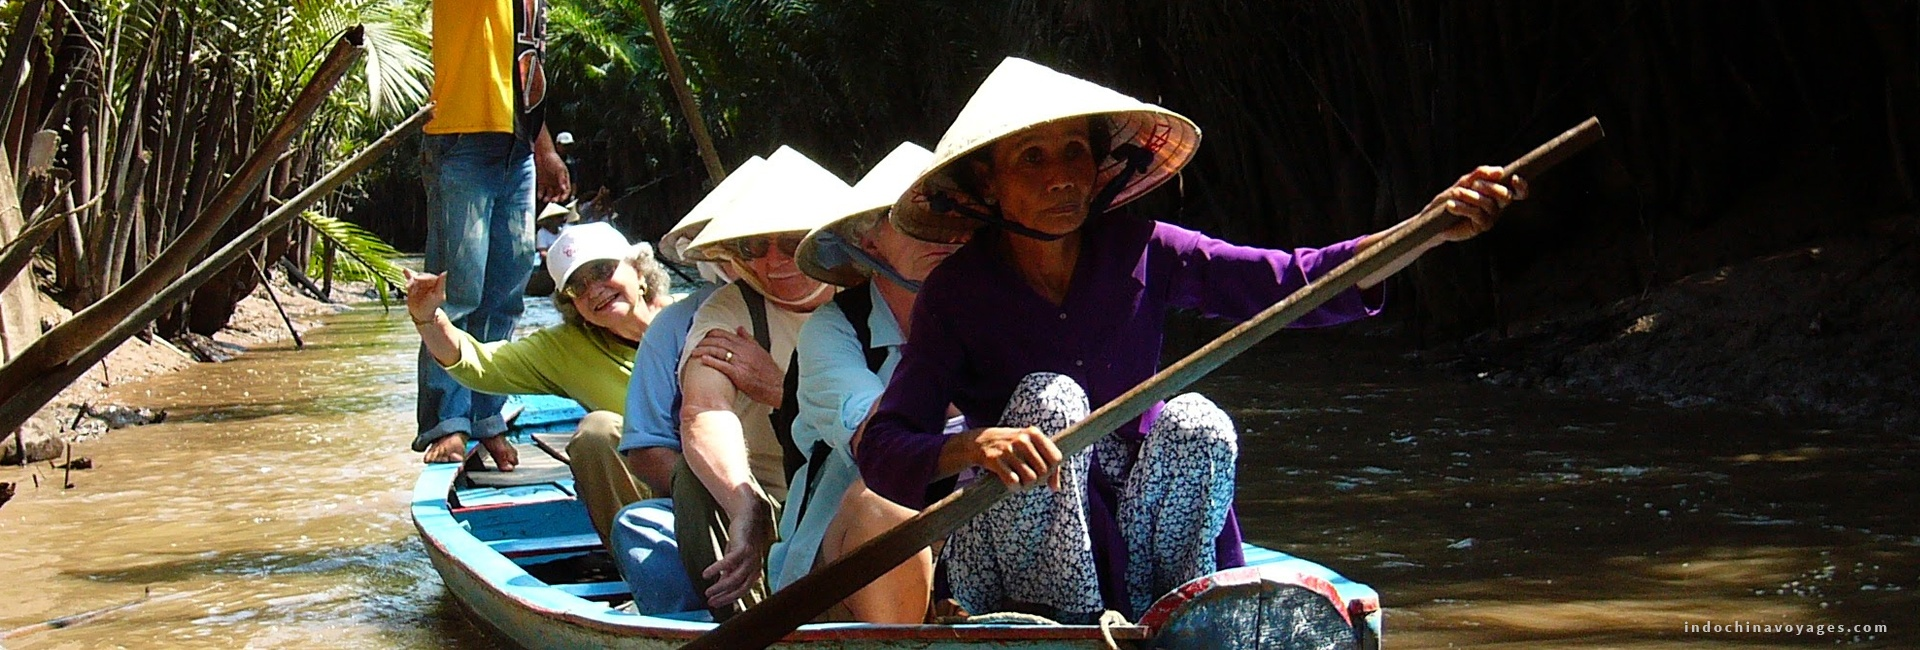 Exotic Explore Cambodia & Vietnam 13 days